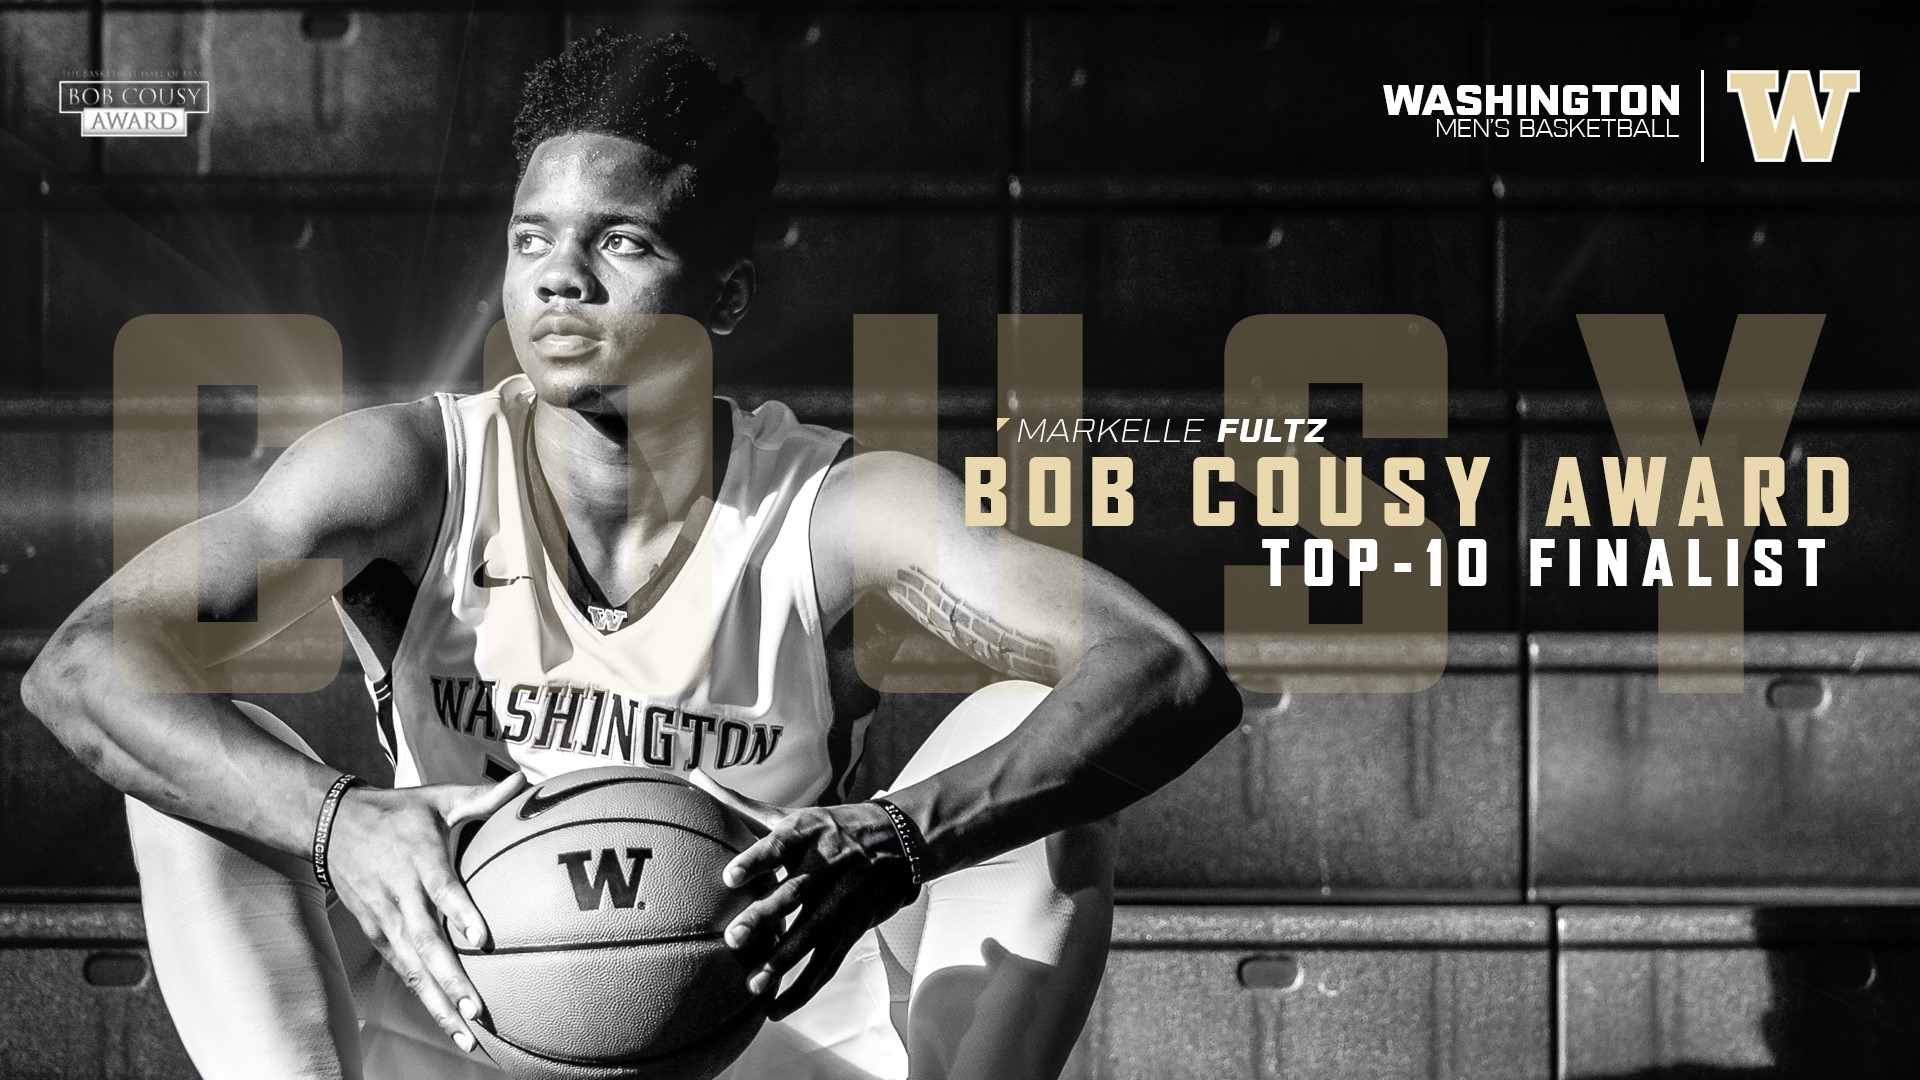 Fultz Selected as e of 10 Finalists for Bob Cousy Award